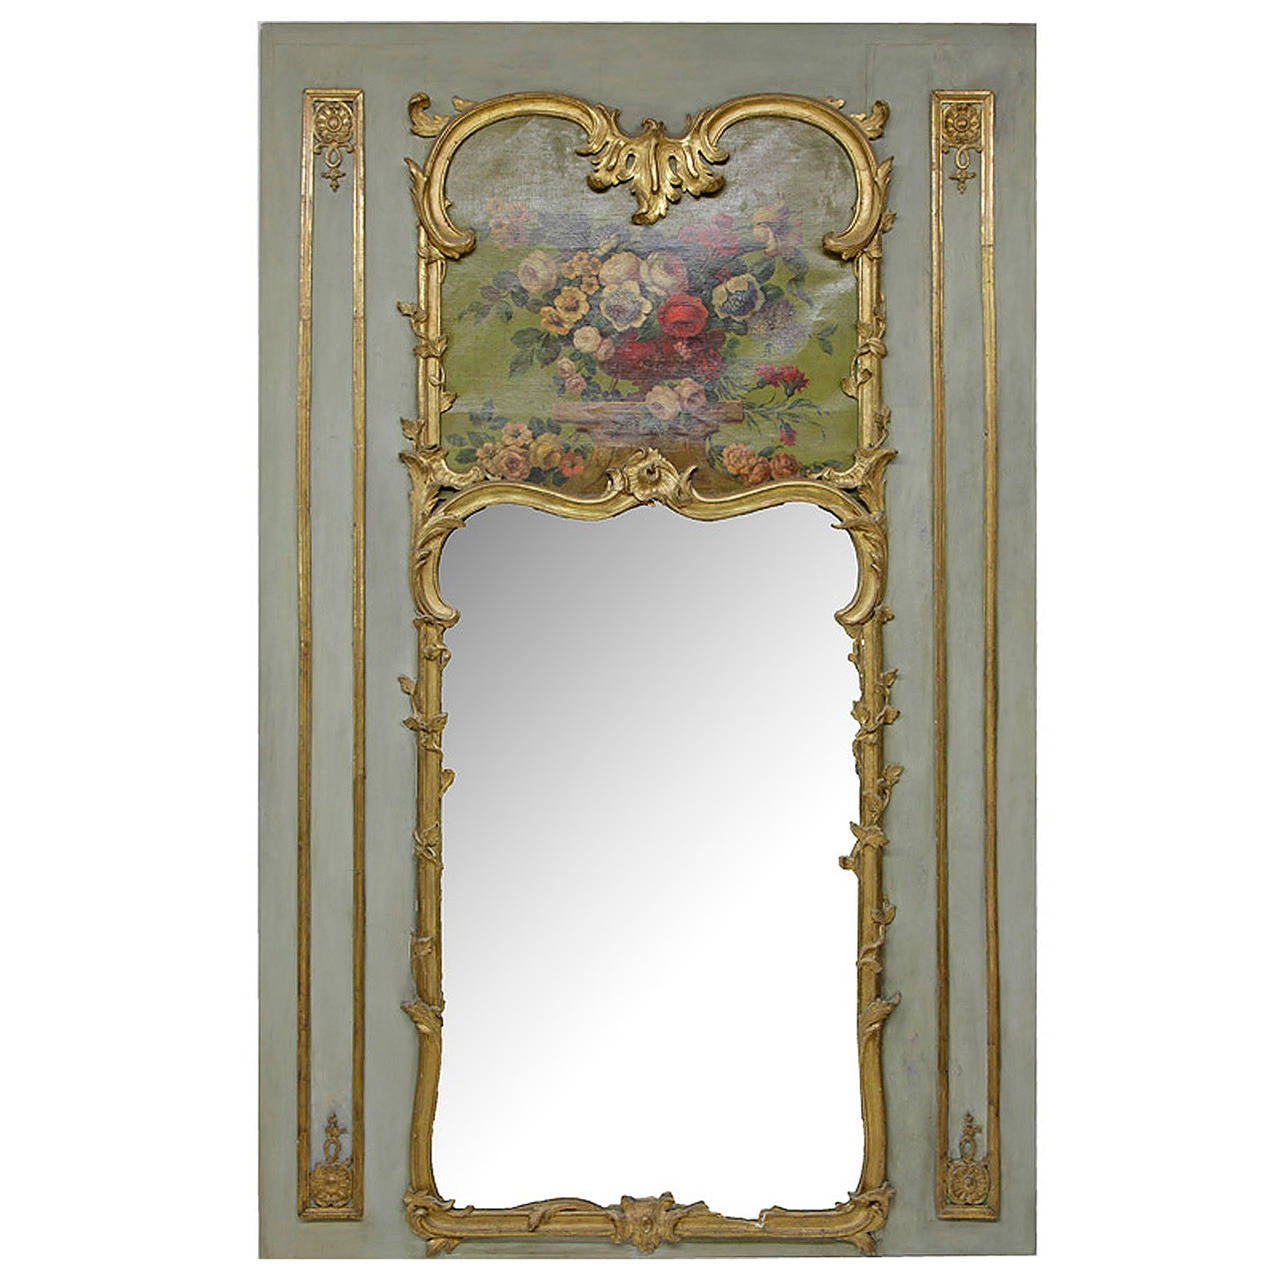 France baroque trumeau mirror 18th century for sale at for Baroque mirror